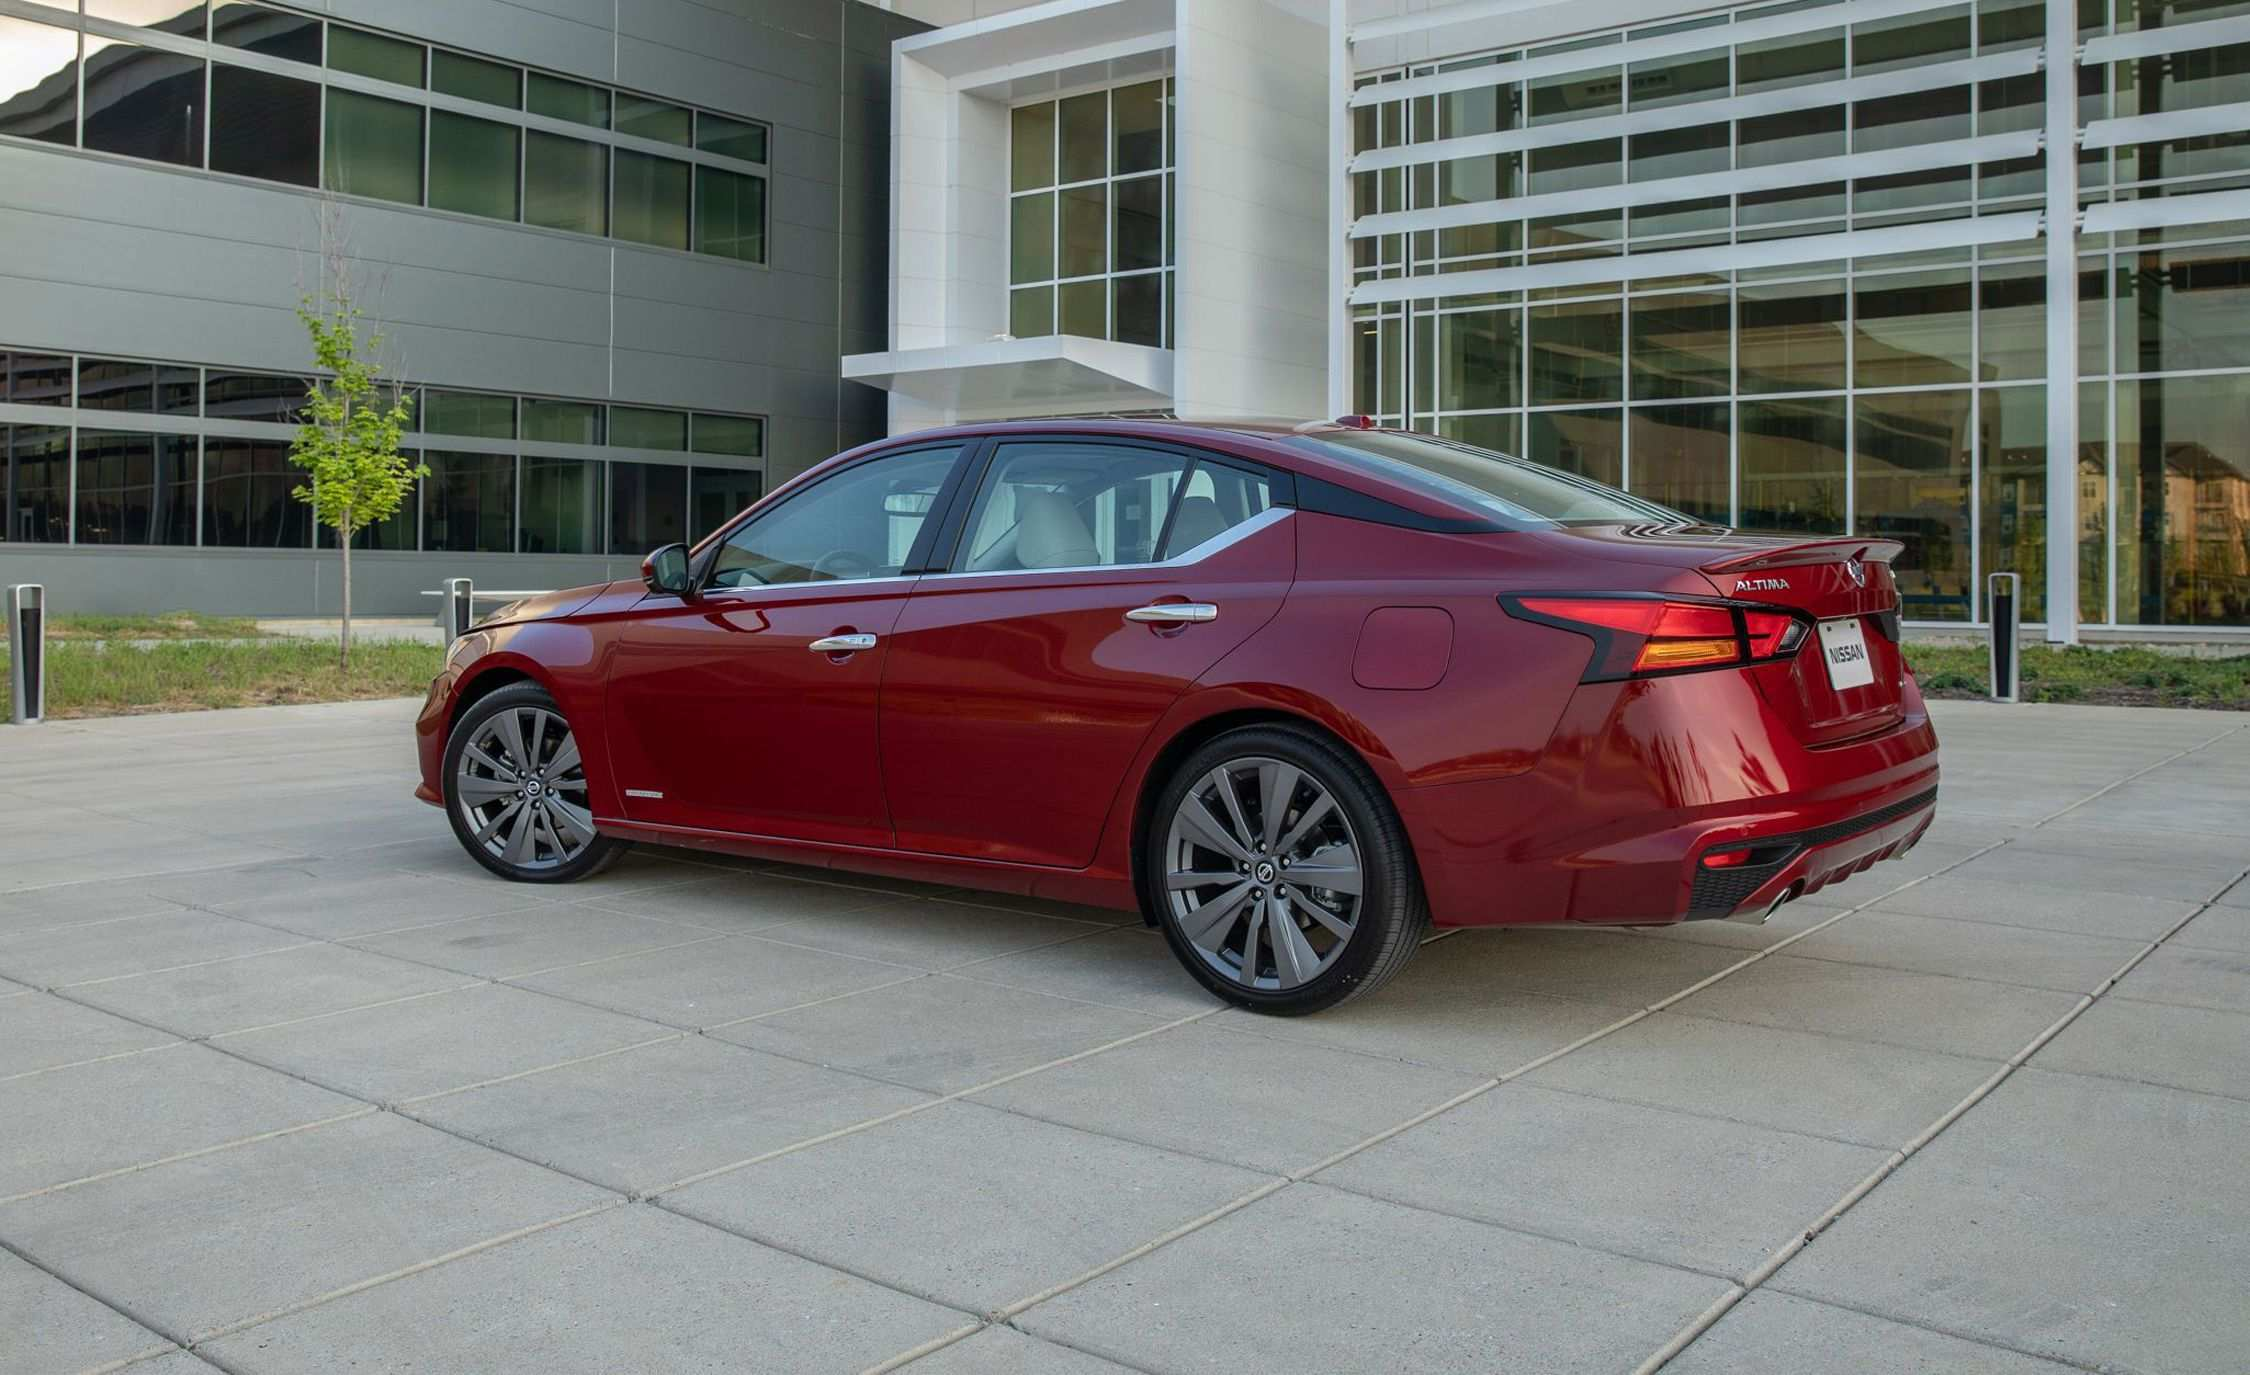 25 The 2019 Nissan Altima Platinum Vc Turbo Release Date for 2019 Nissan Altima Platinum Vc Turbo